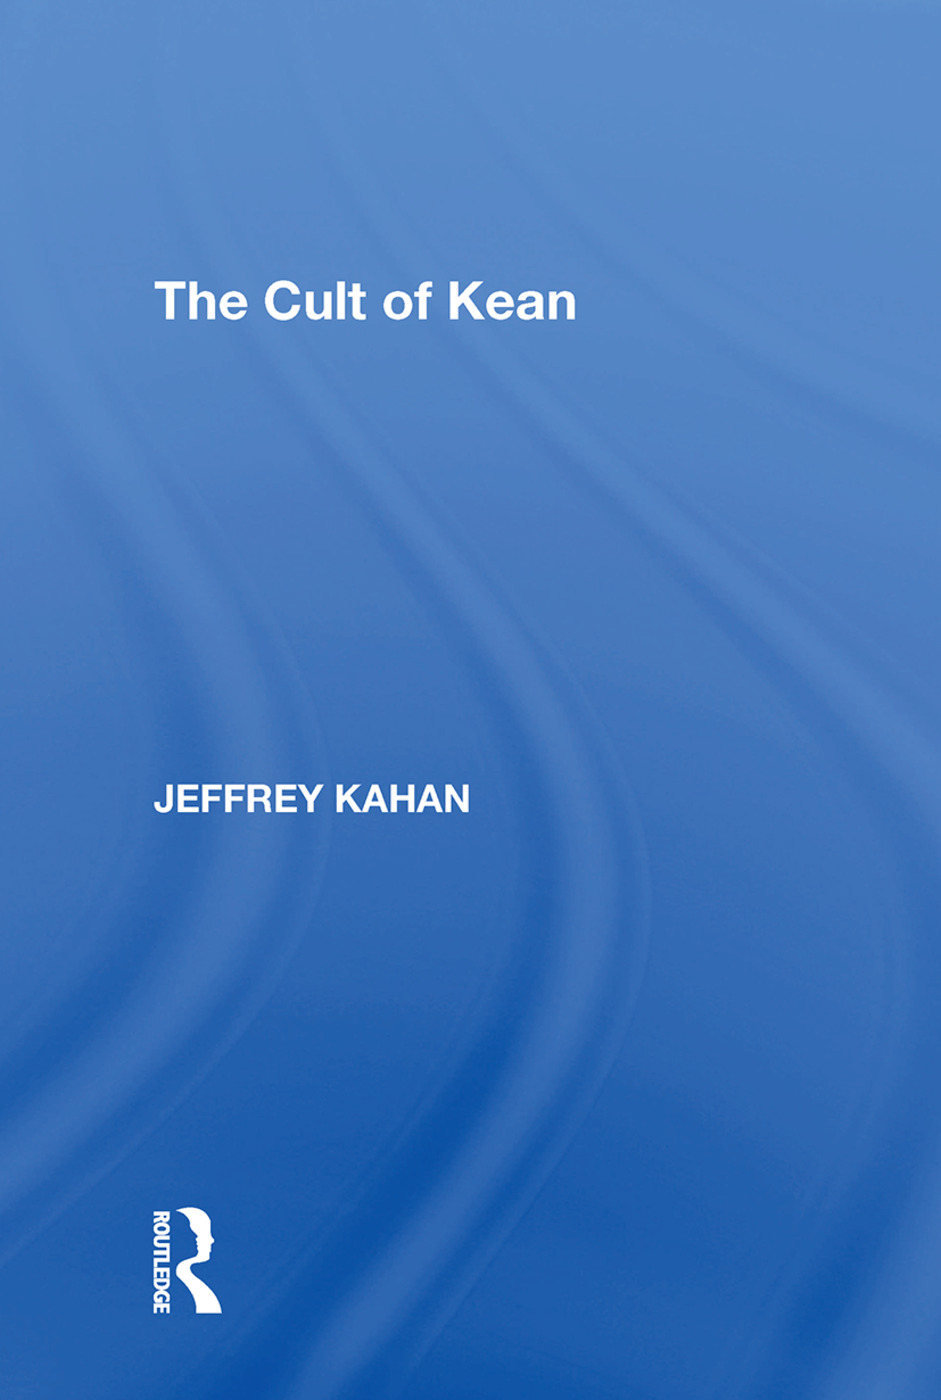 The Cult of Kean